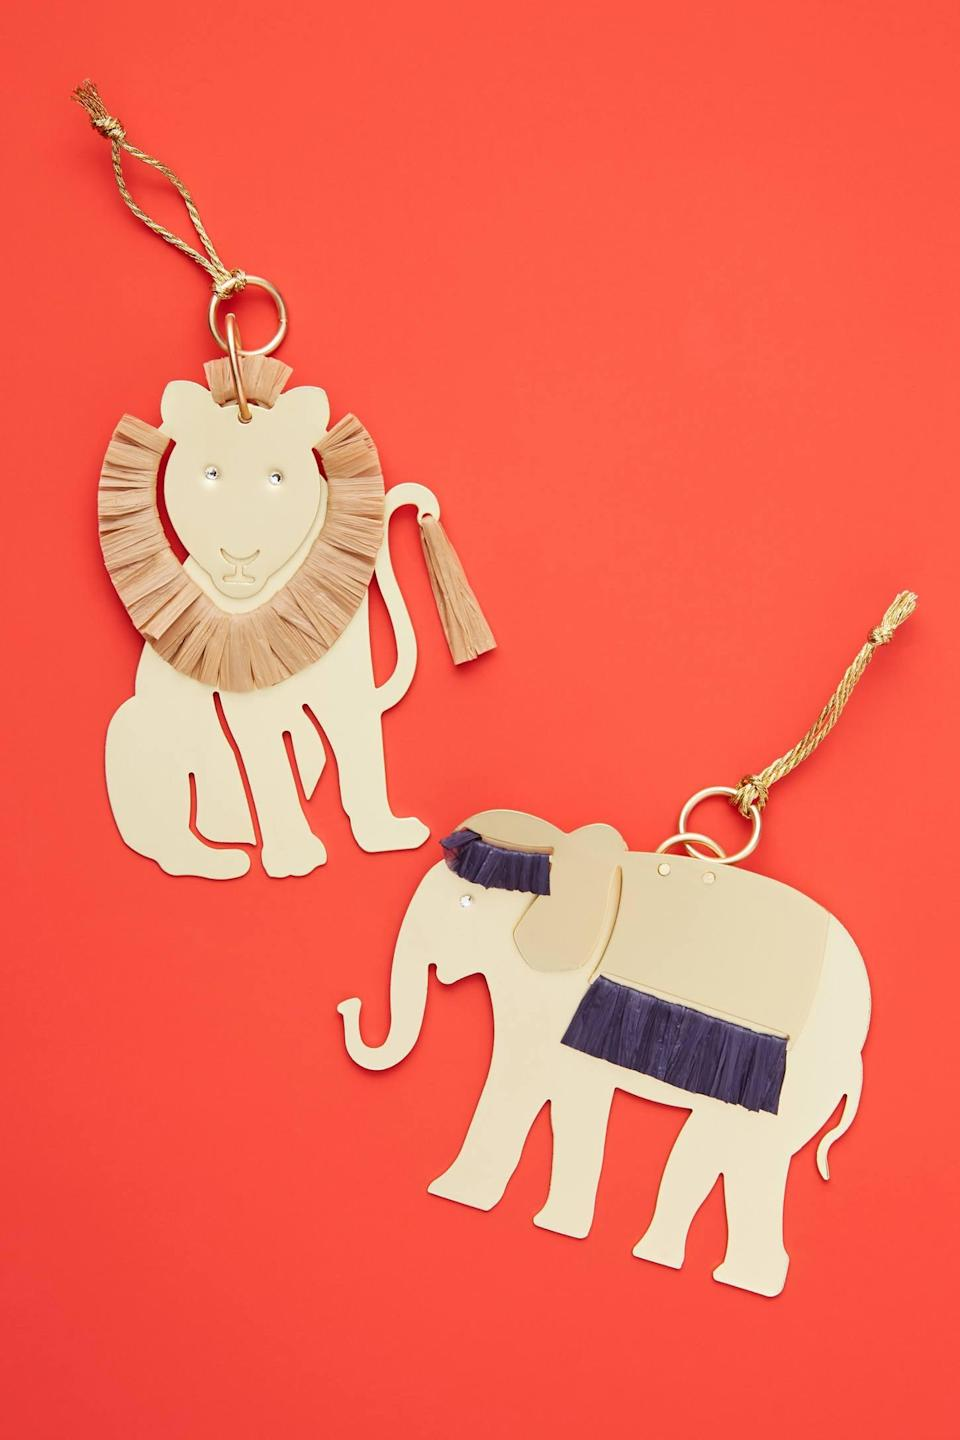 """<p>Give your tree a worldly touch with the <a href=""""https://www.popsugar.com/buy/Majestic-Elephant-Ornament-490587?p_name=Majestic%20Elephant%20Ornament&retailer=anthropologie.com&pid=490587&price=22&evar1=casa%3Aus&evar9=46615300&evar98=https%3A%2F%2Fwww.popsugar.com%2Fhome%2Fphoto-gallery%2F46615300%2Fimage%2F46615458%2FMajestic-Elephant-Ornament&list1=shopping%2Canthropologie%2Choliday%2Cchristmas%2Cchristmas%20decorations%2Choliday%20decor%2Chome%20shopping&prop13=mobile&pdata=1"""" rel=""""nofollow noopener"""" class=""""link rapid-noclick-resp"""" target=""""_blank"""" data-ylk=""""slk:Majestic Elephant Ornament"""">Majestic Elephant Ornament</a> ($22).</p>"""